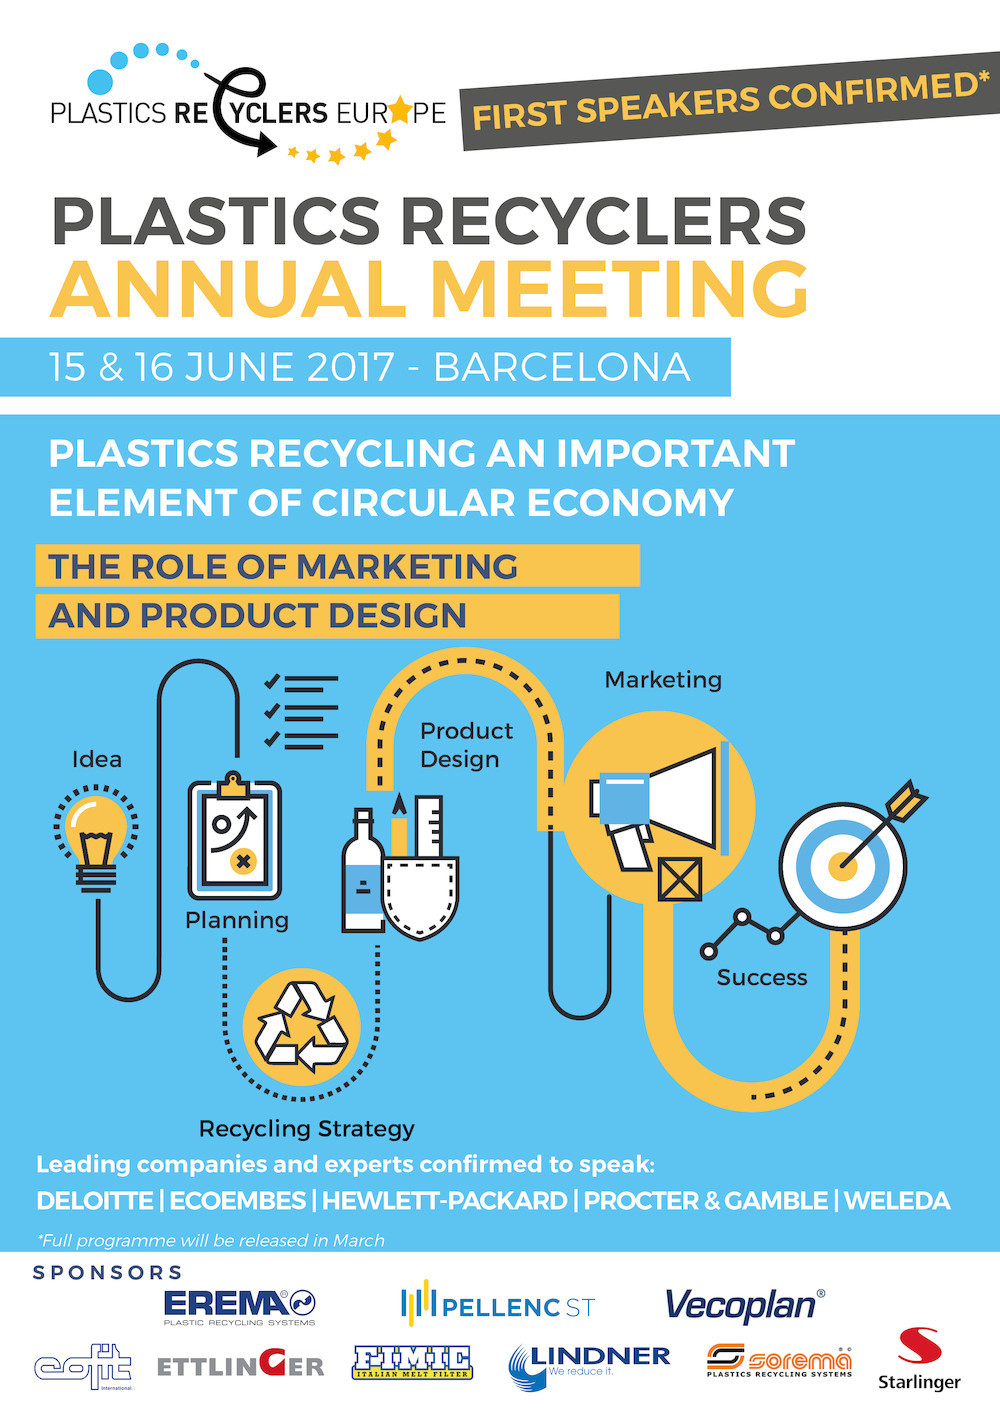 Leading companies and experts to speak at Plastics Recyclers Annual Meeting 2017